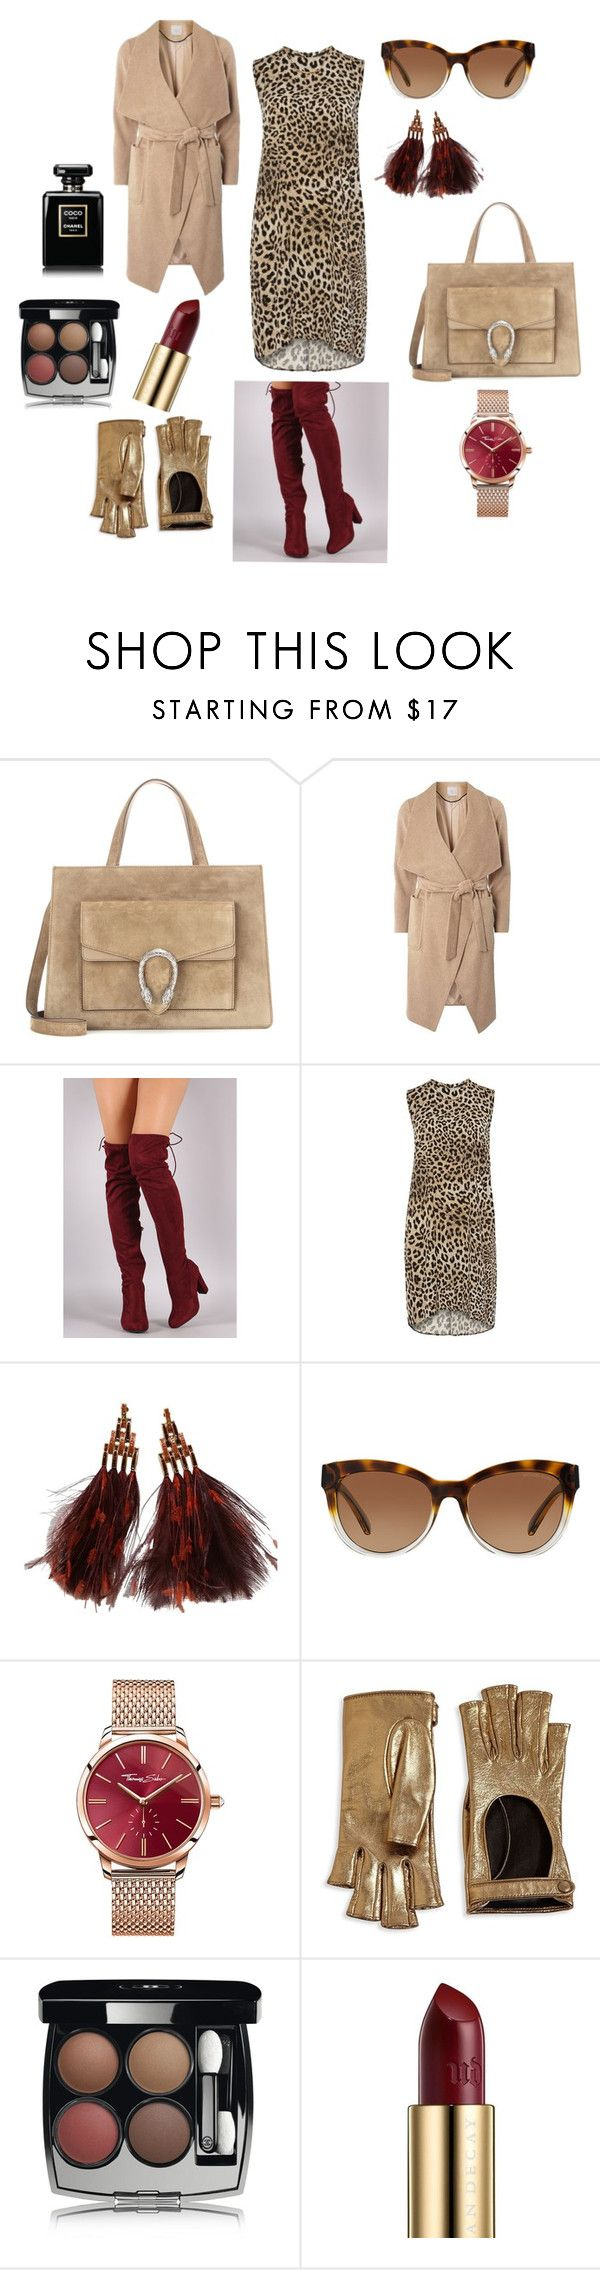 ТЕПЛАЯ ОСЕНЬ by natali26-72 on Polyvore featuring мода, Dorothy Perkins, Gucci, Louis Vuitton, Thomas Sabo, Michael Kors, Chanel and Urban Decay